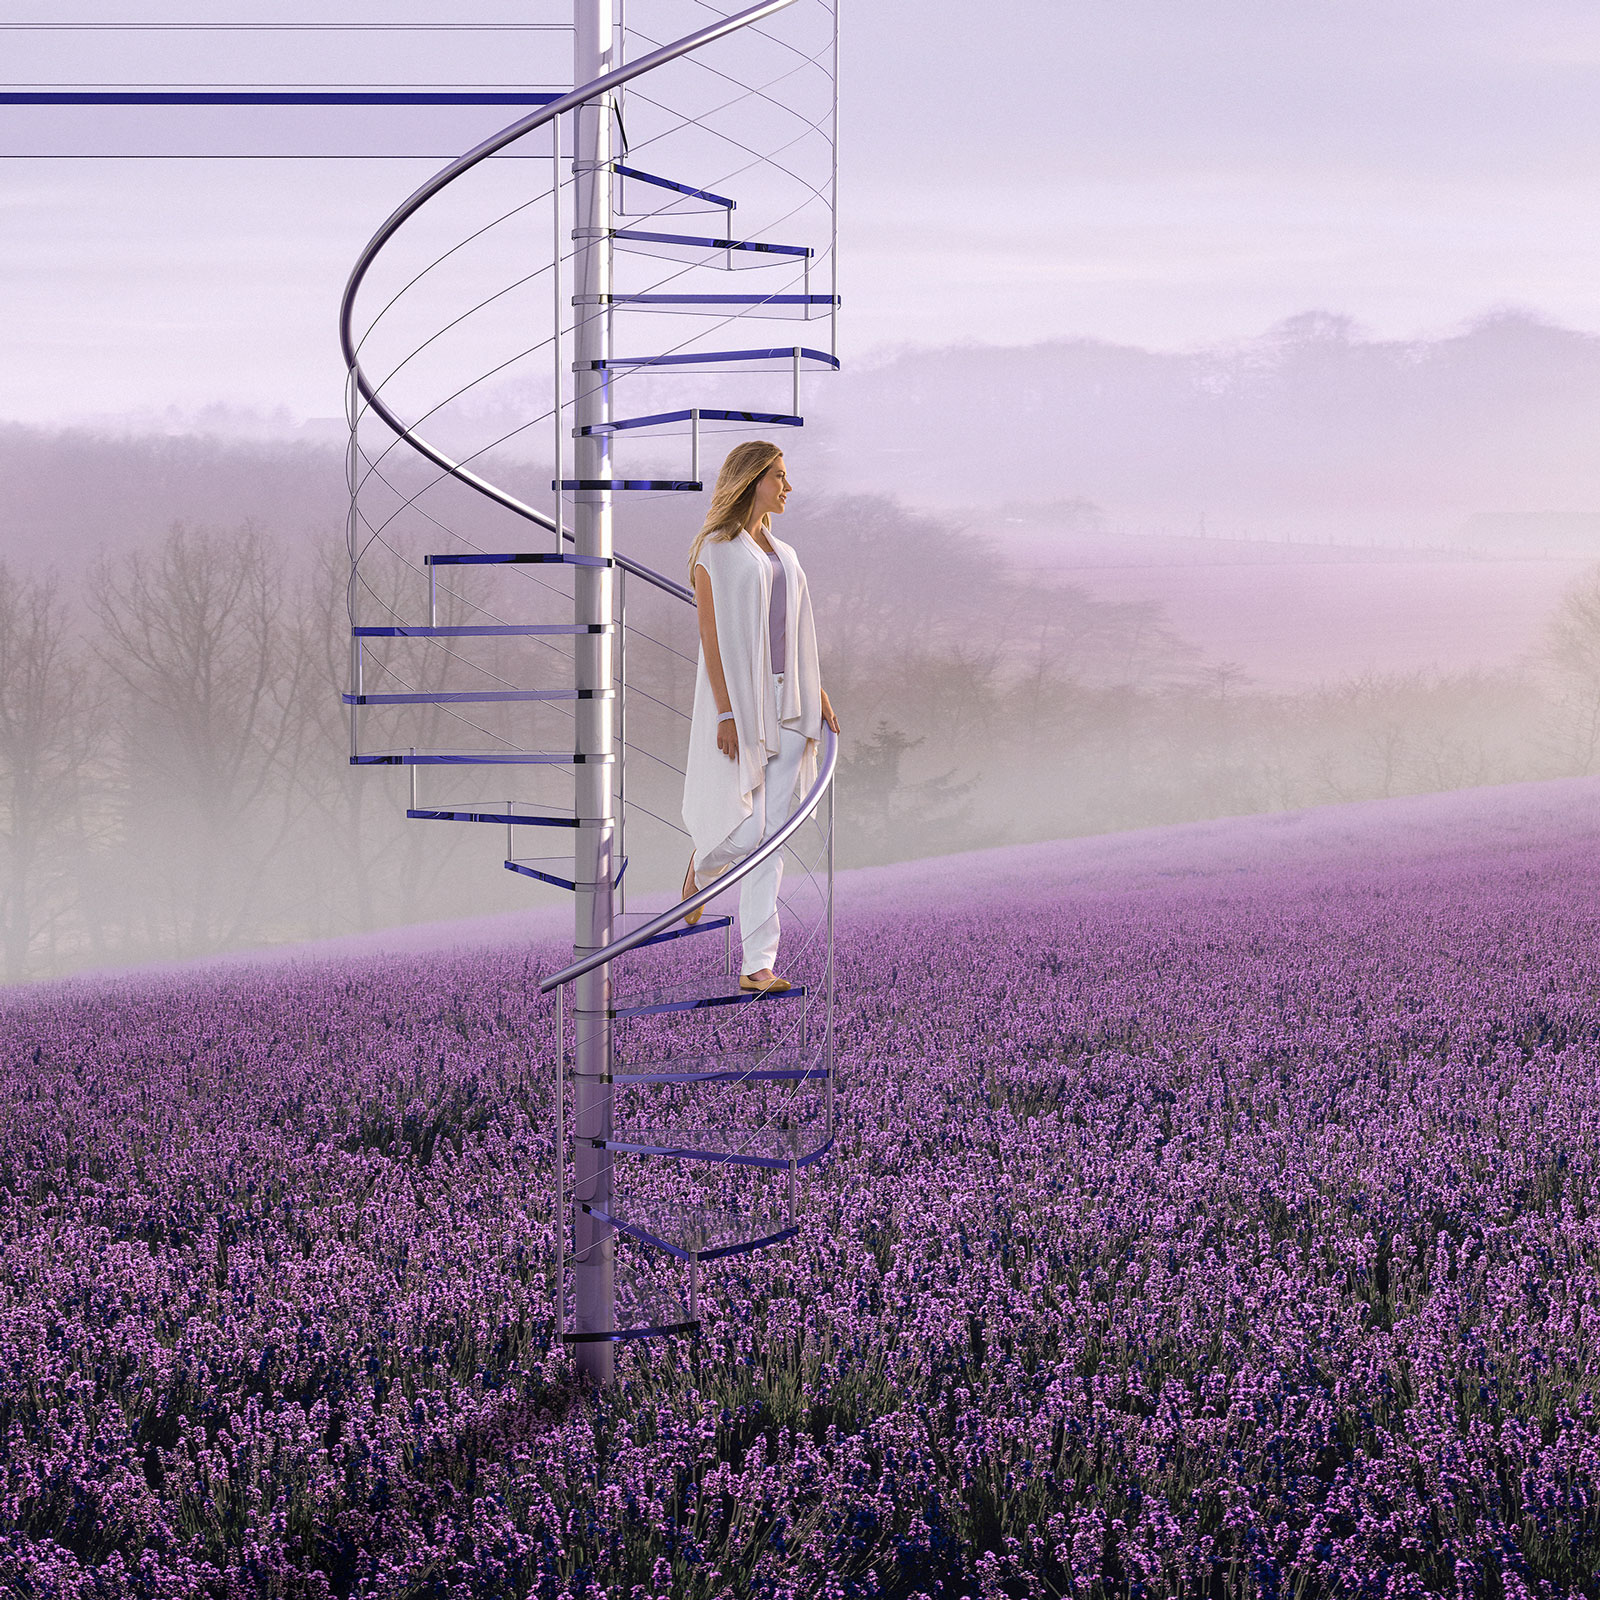 Glade | CGI staircase combined with landscapes and studio photography